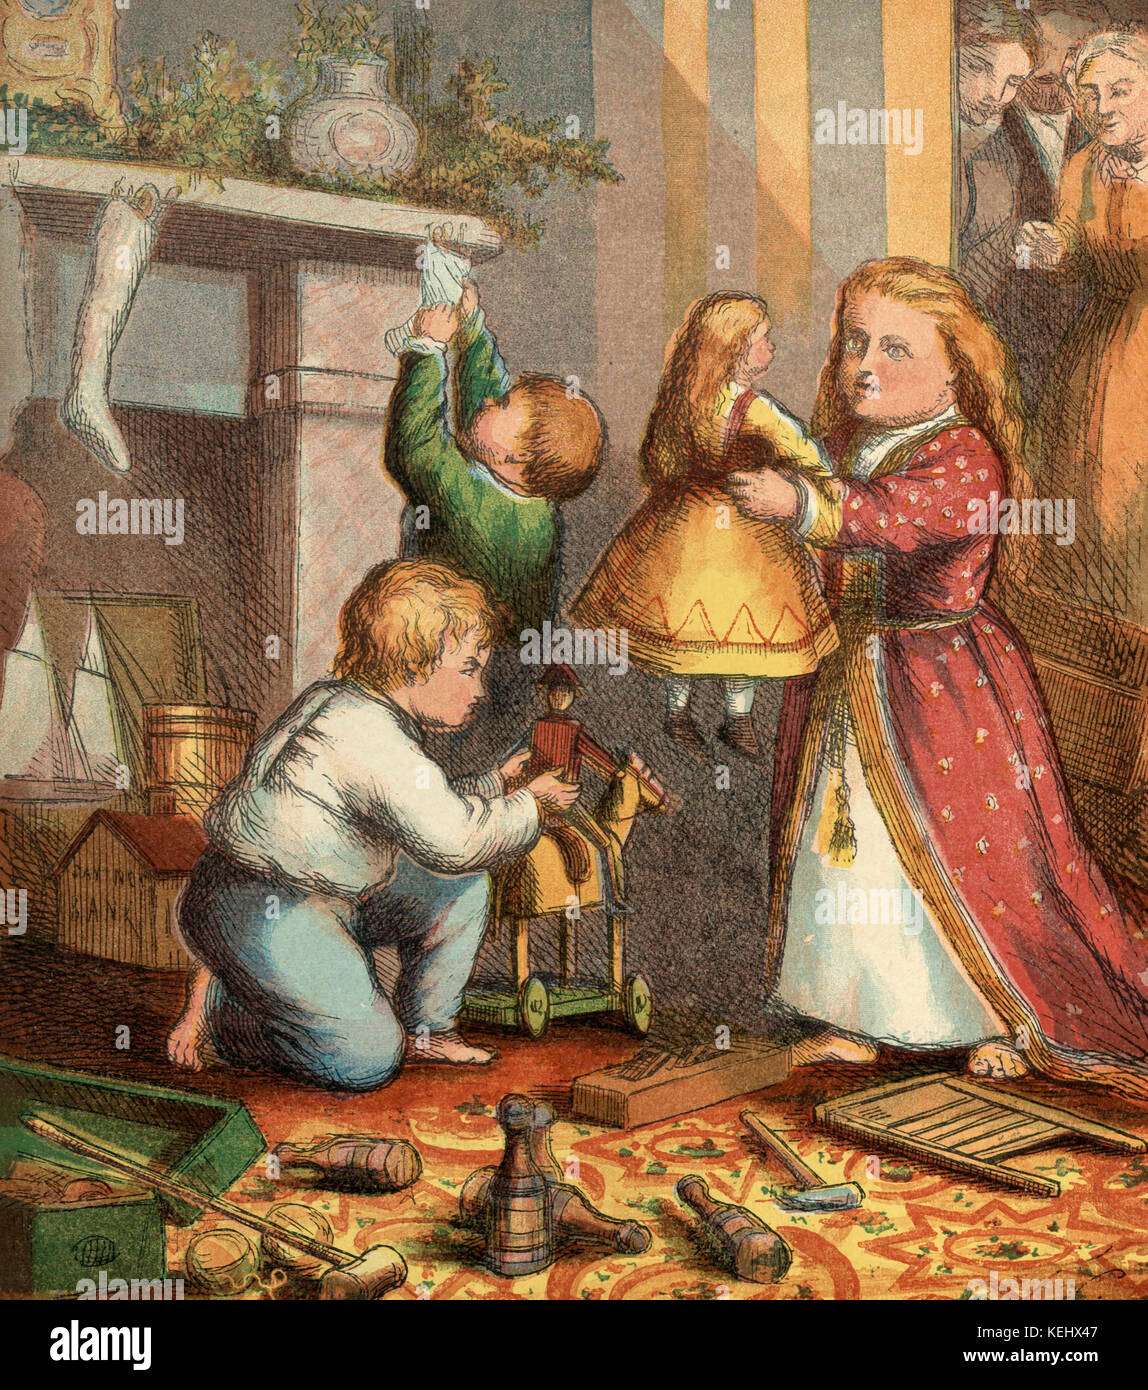 Vintage Illustration of Children on Christmas Morning - Stock Image